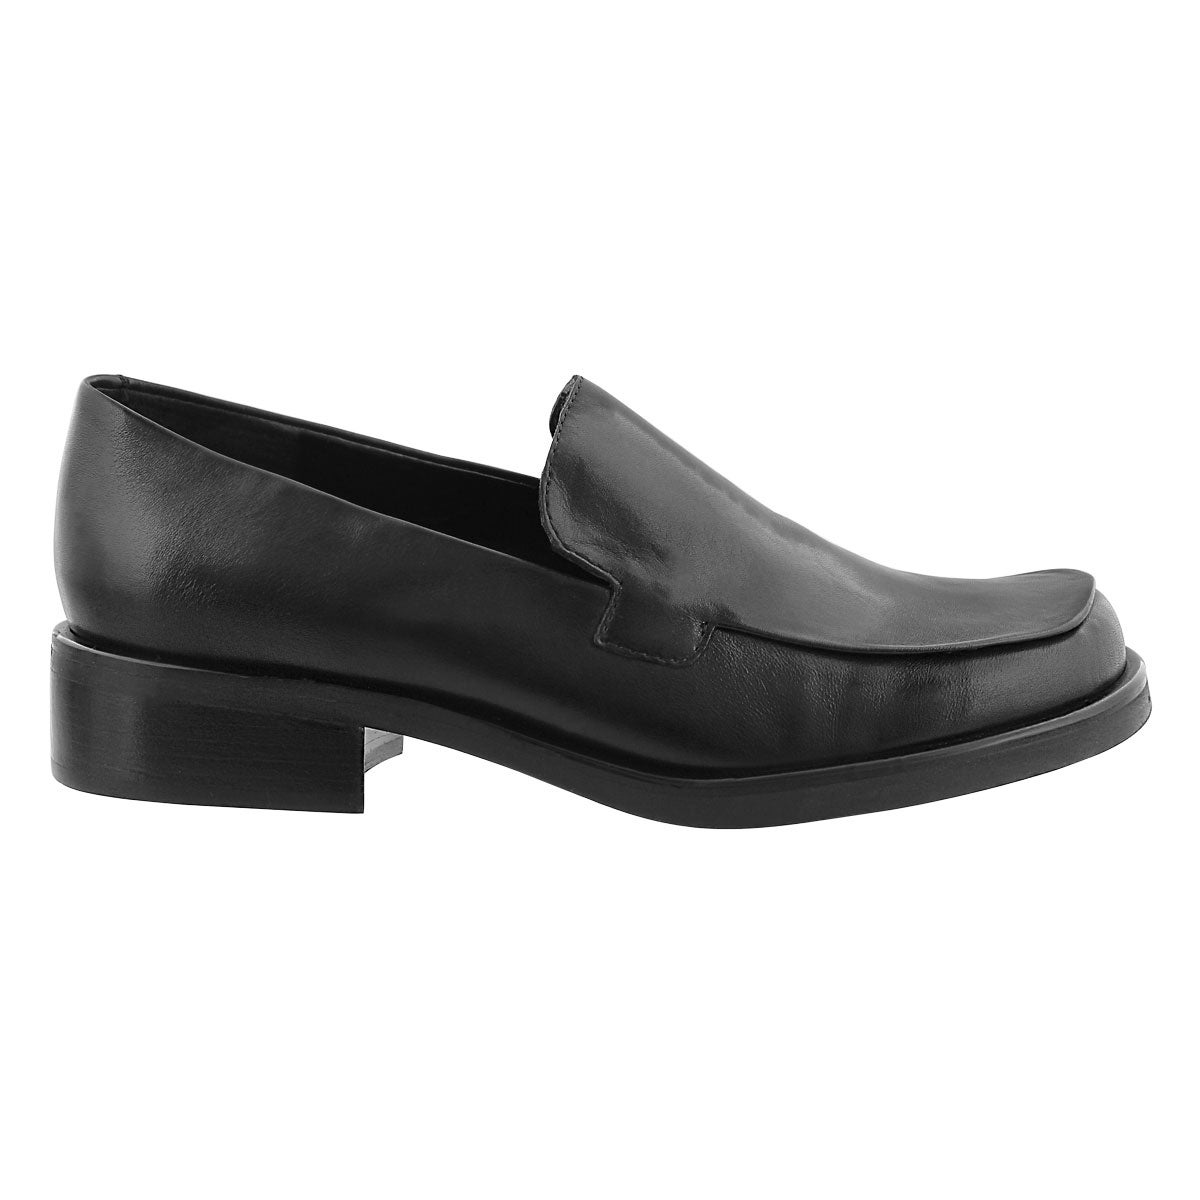 Lds Bocca blk slip on loafer